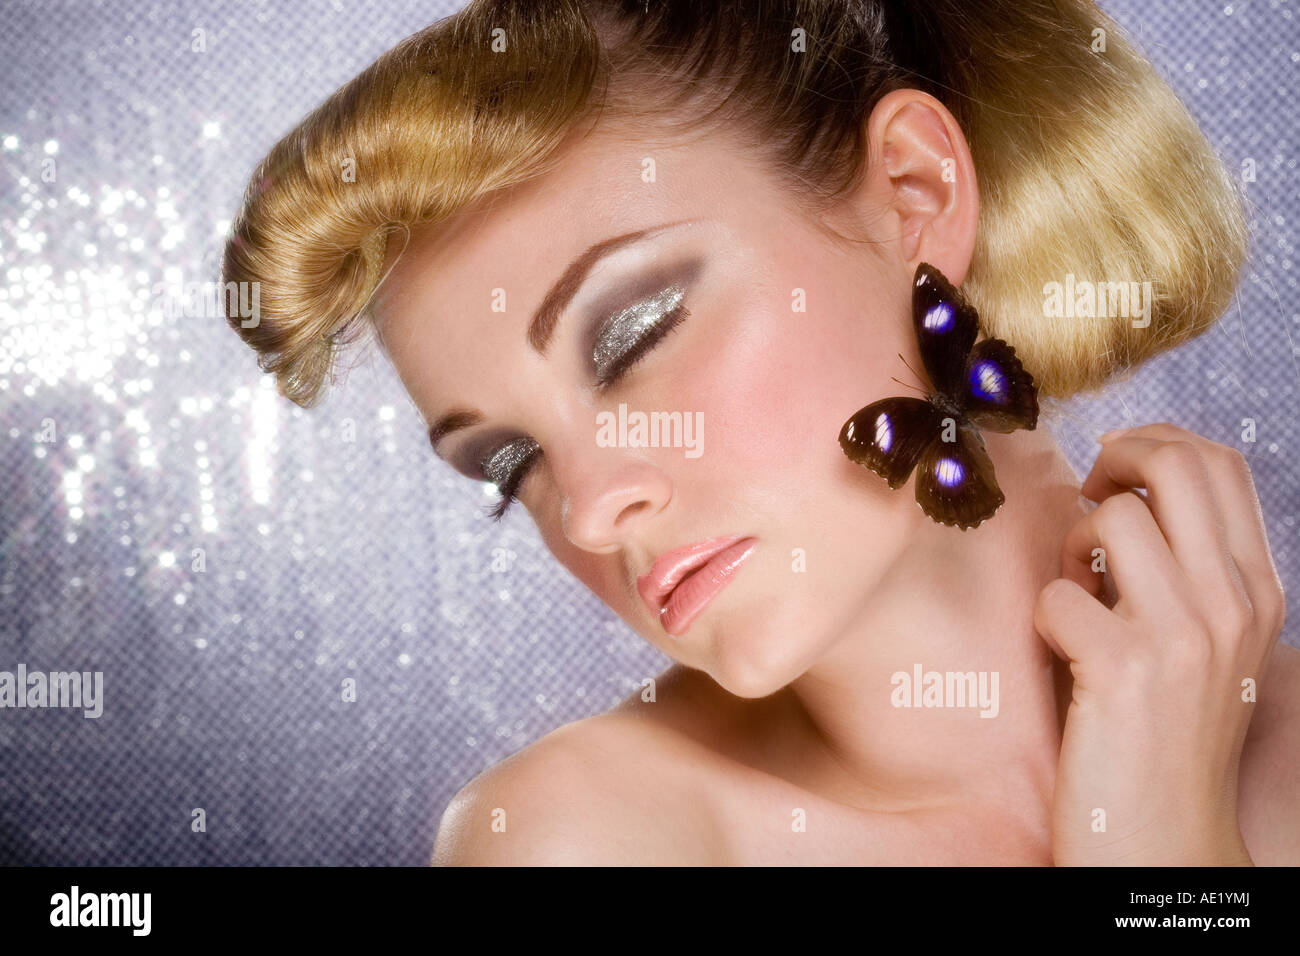 A portrait beautiful, glamorous young girl with a butterfly on her face. Stock Photo